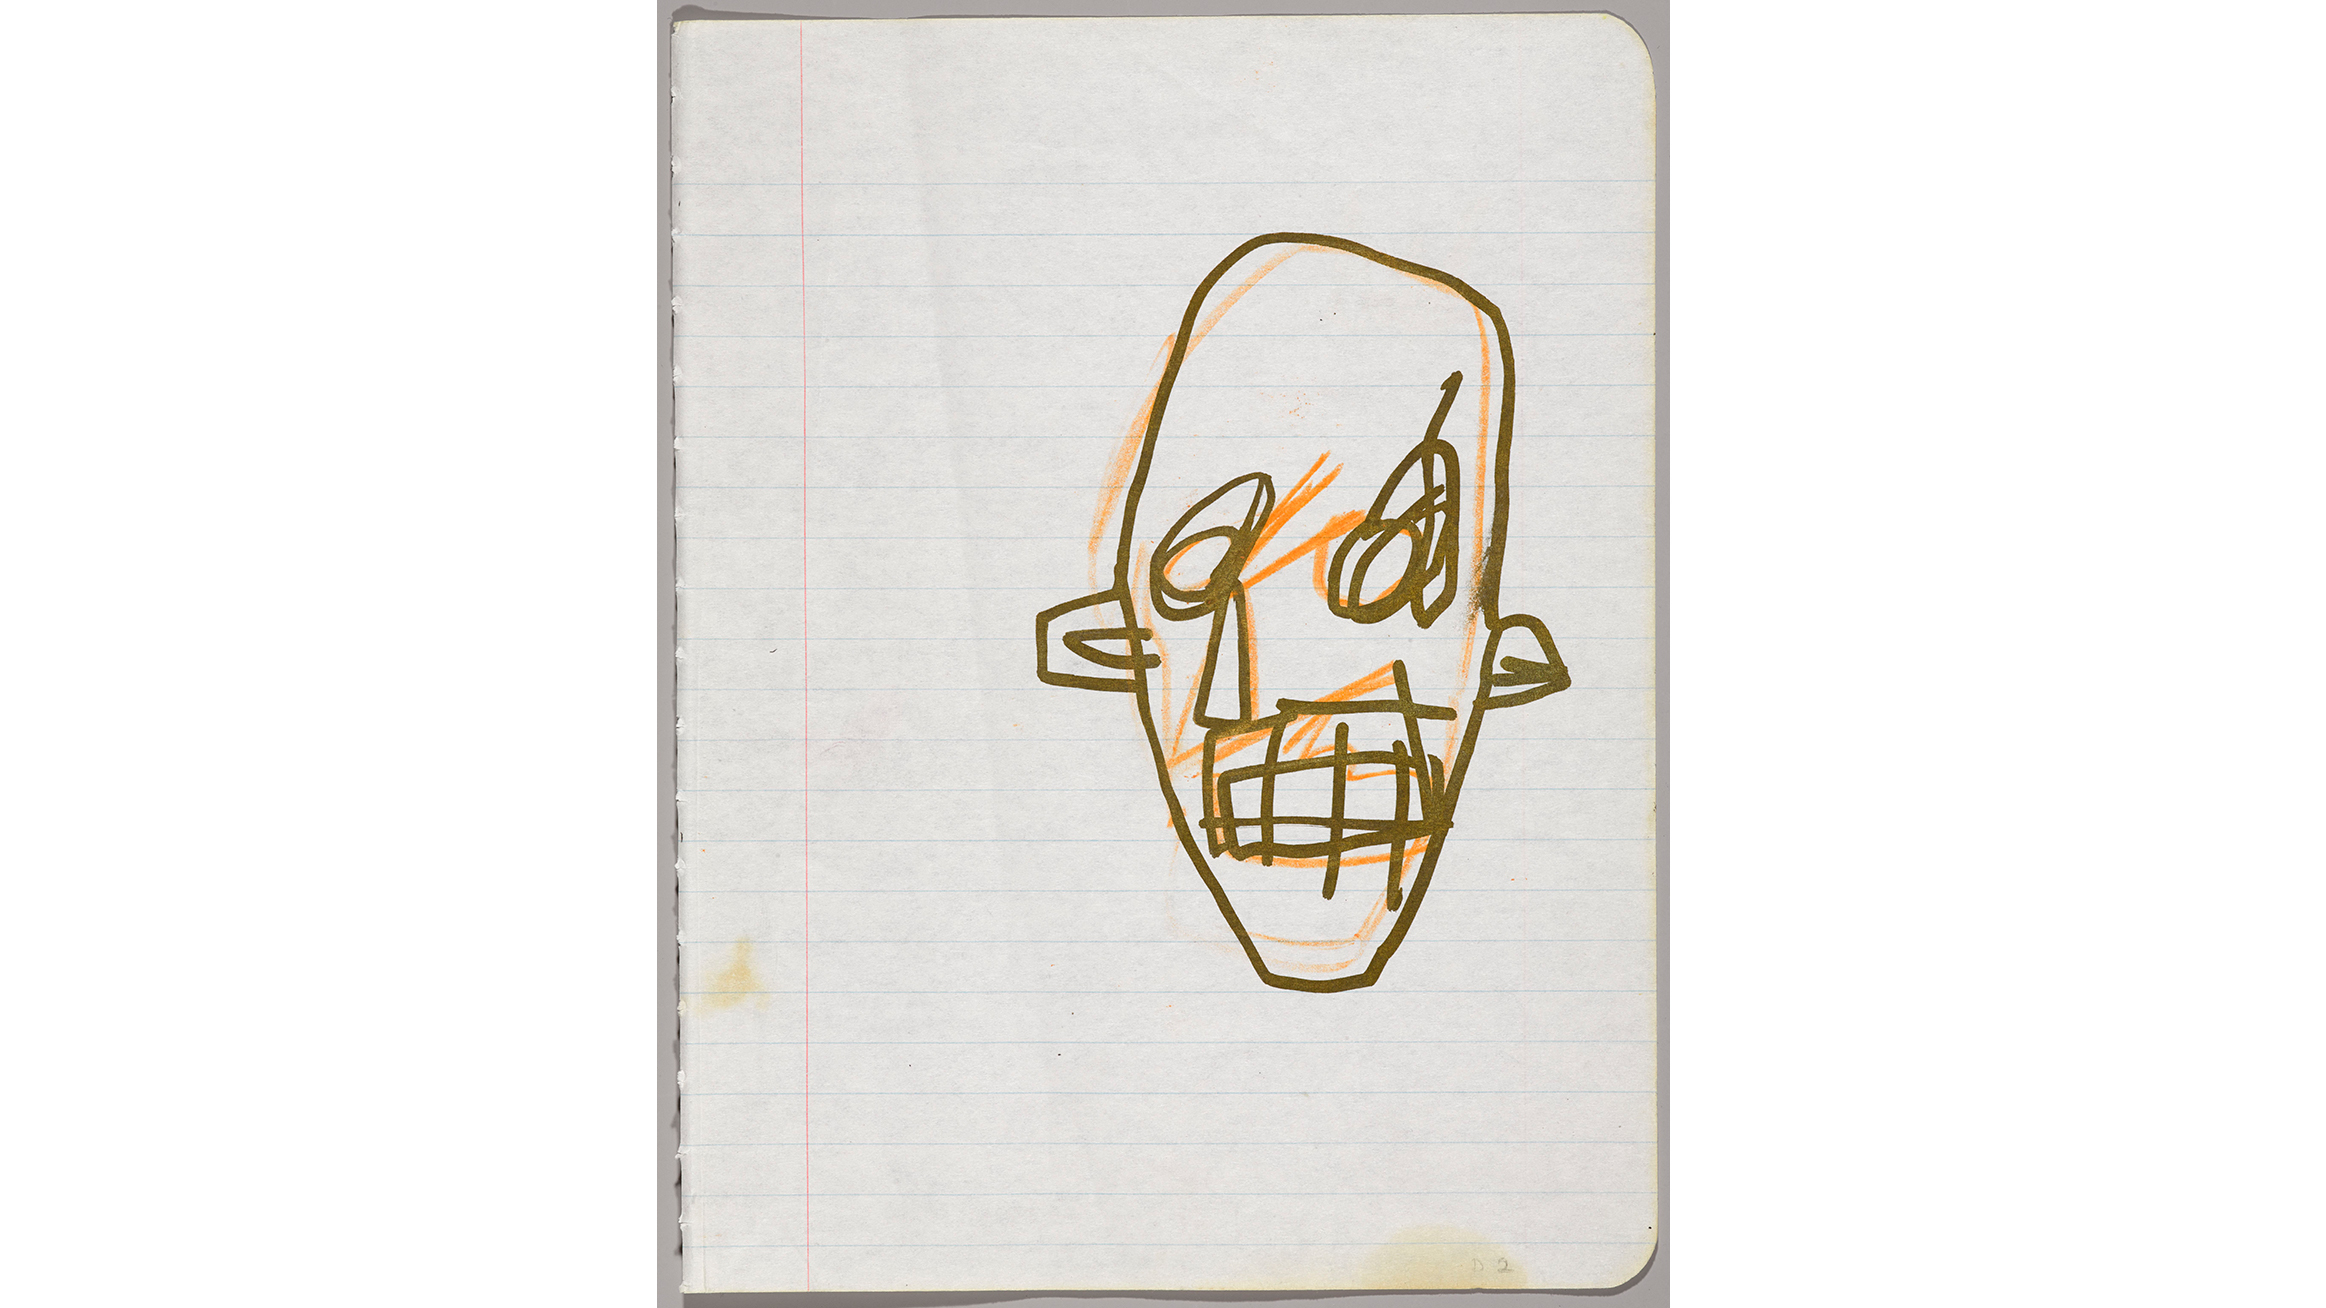 Jean-Michel Basquiat (American, 1960–1988). Untitled Notebook Page, 1980–81. Metallic ink and ink wax crayon on ruled notebook paper, 9 5/8 x 7 5/8 in. (24.5 x 19.4 cm).